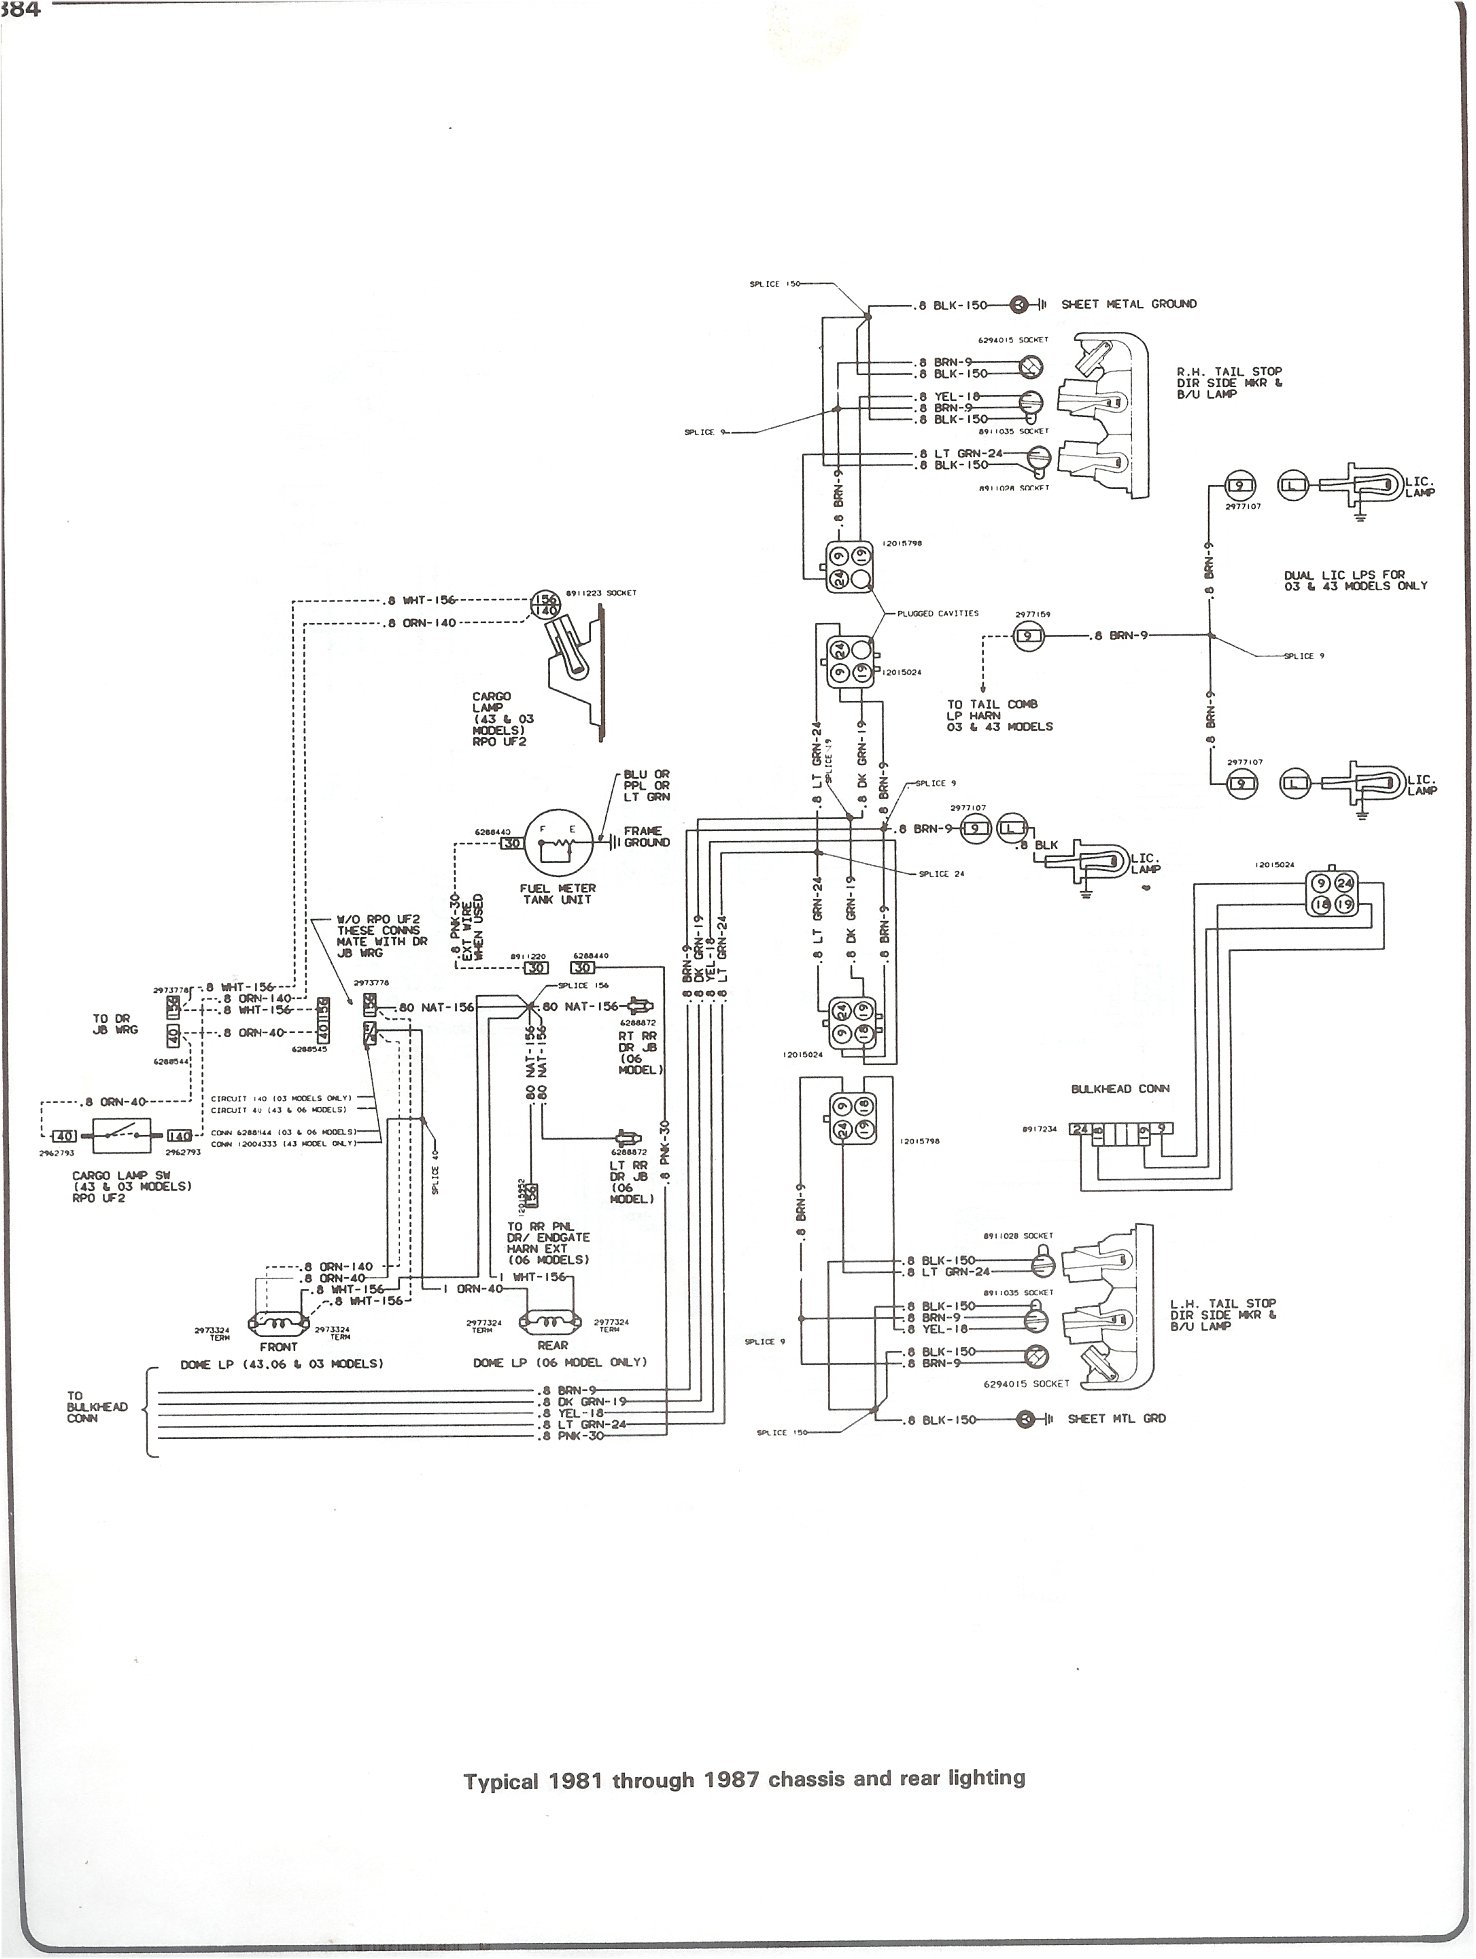 81 87_chass_rr_light complete 73 87 wiring diagrams 1985 chevy c10 fuse box diagram at cita.asia